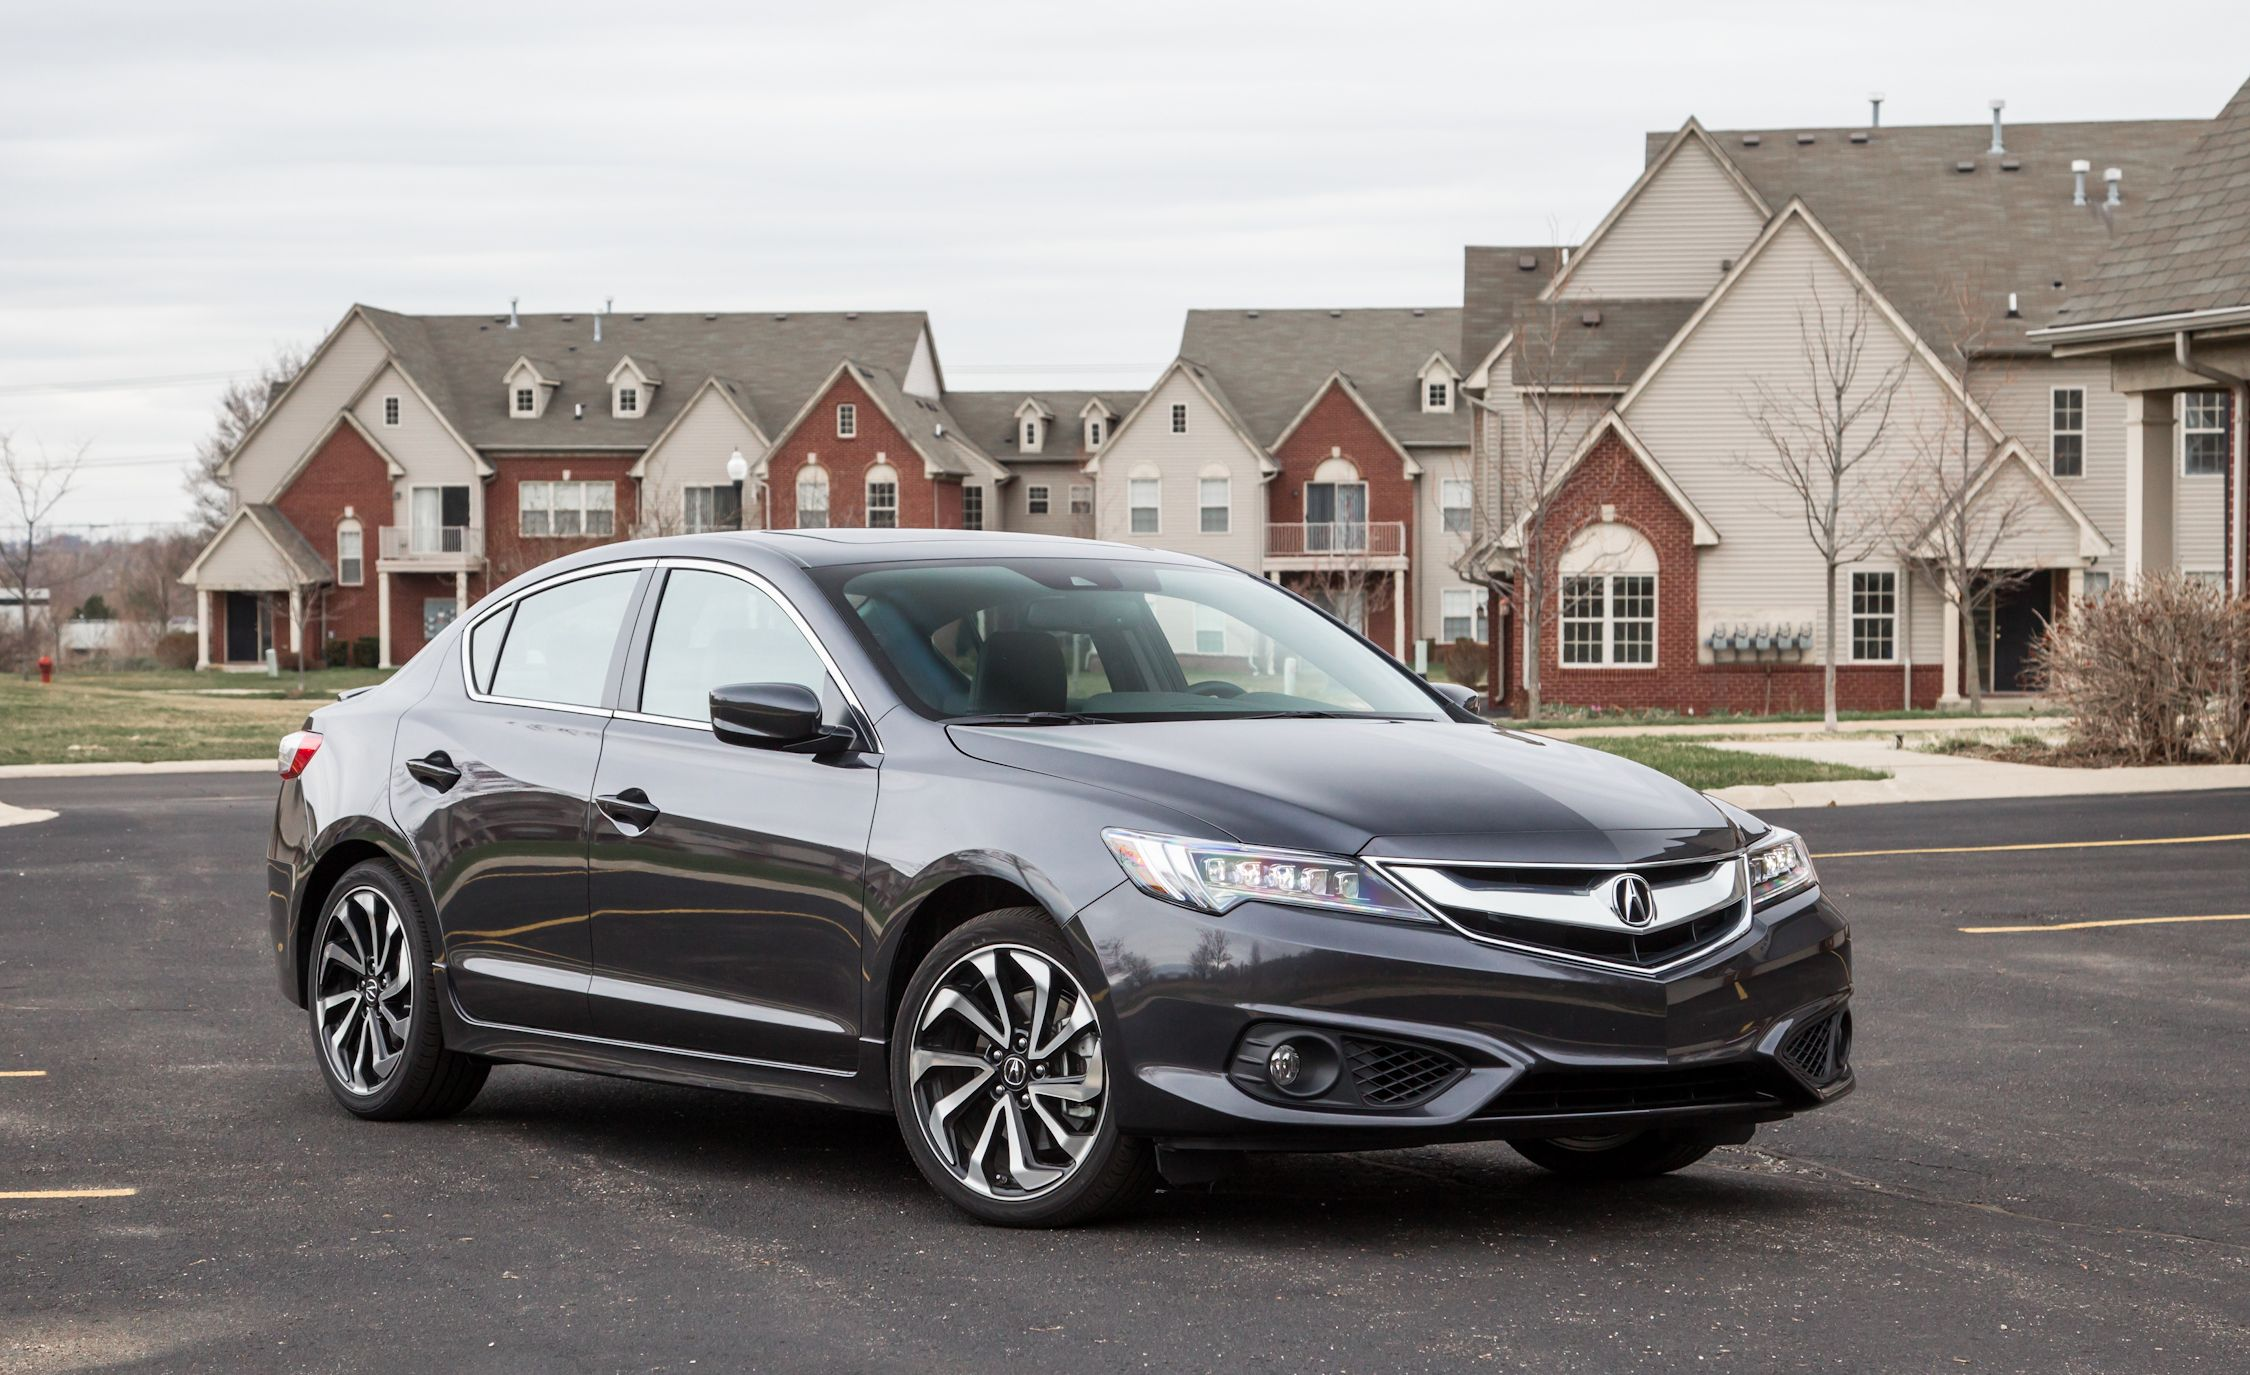 Acura ILX Reviews Acura ILX Price Photos And Specs Car And - Acura itx